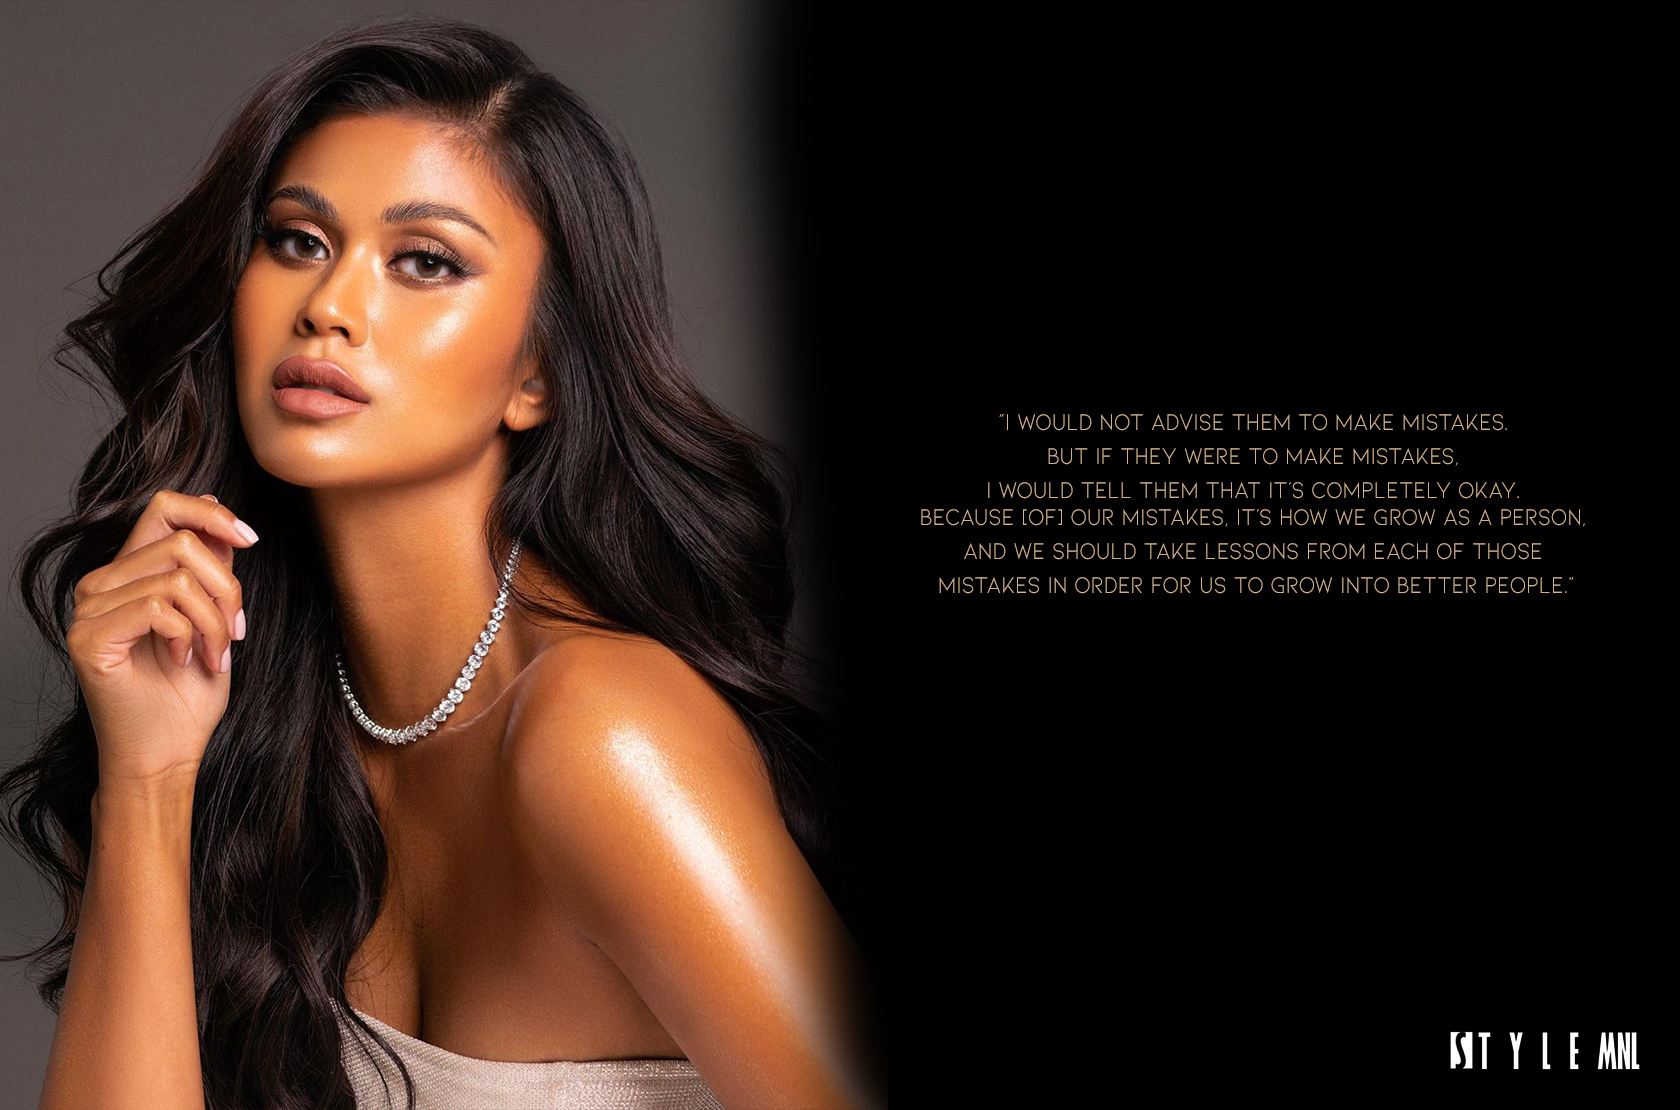 katrina dimaranan-7 OF THE BEST ANSWERS TO THE TRICKY QUESTION FROM MISS UNIVERSE PHILIPPINES 2021 PRELIMINARY INTERVIEWS